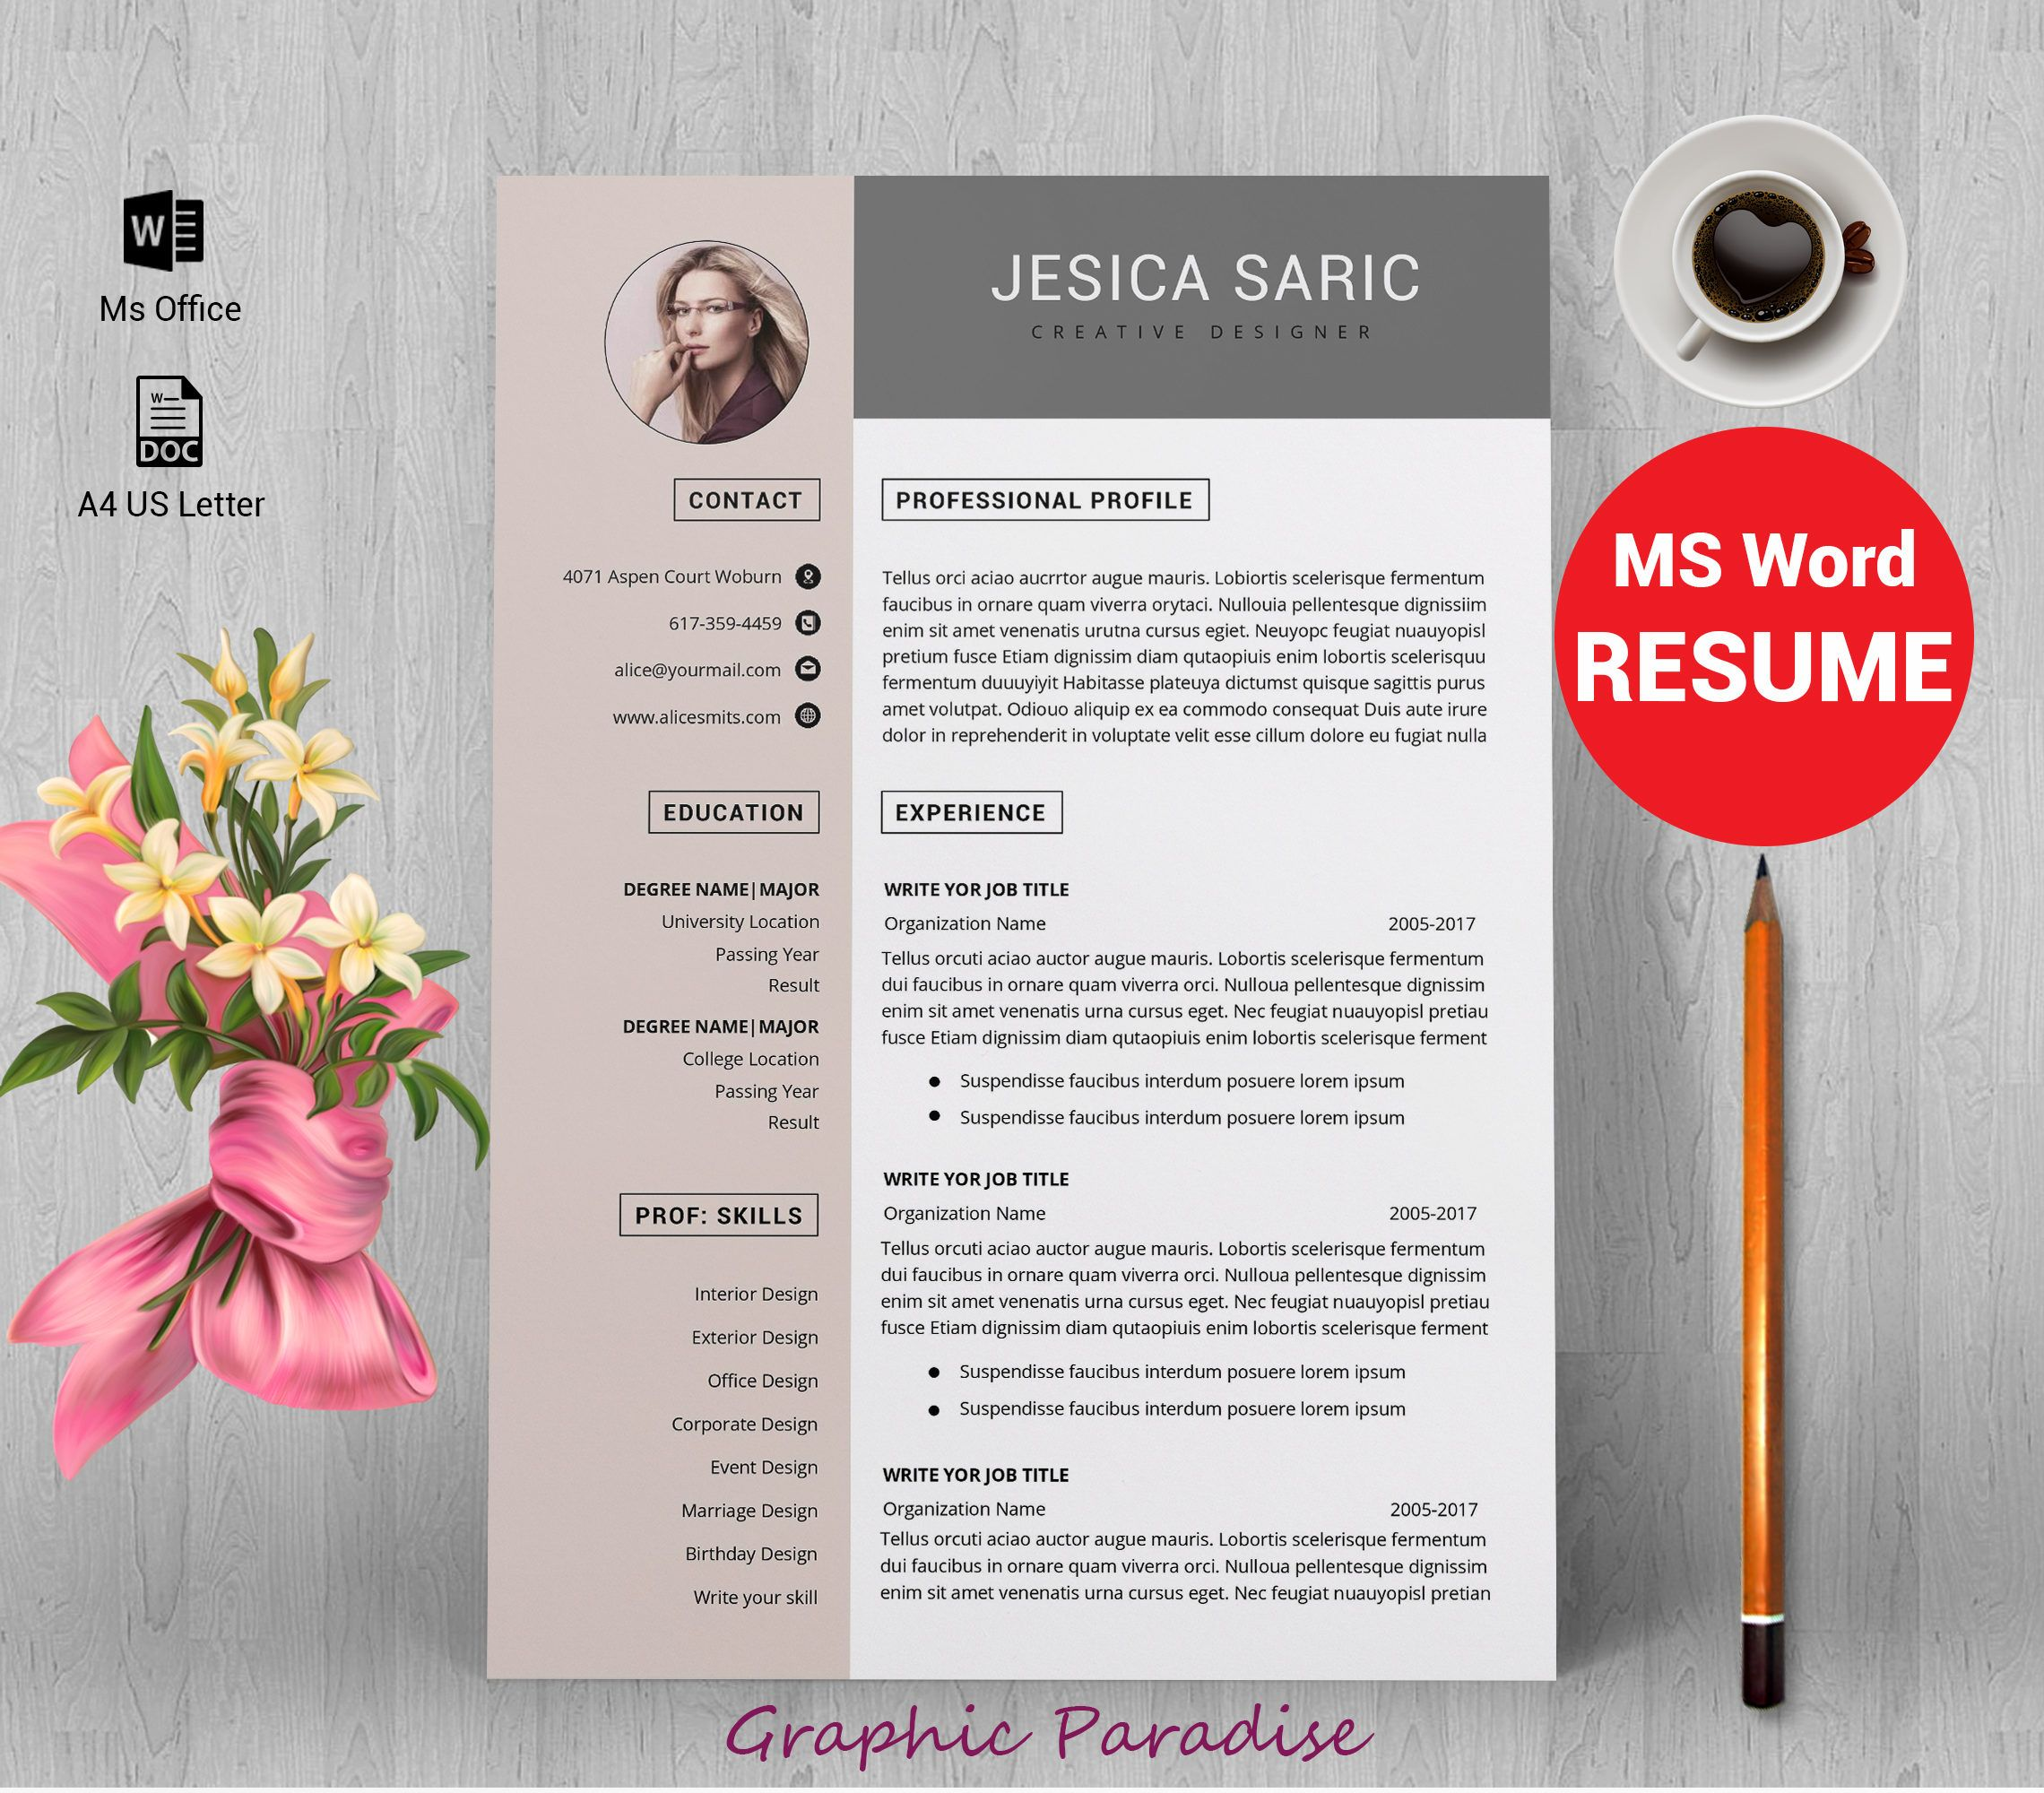 Professional resume template instant download, 3 page resume ...